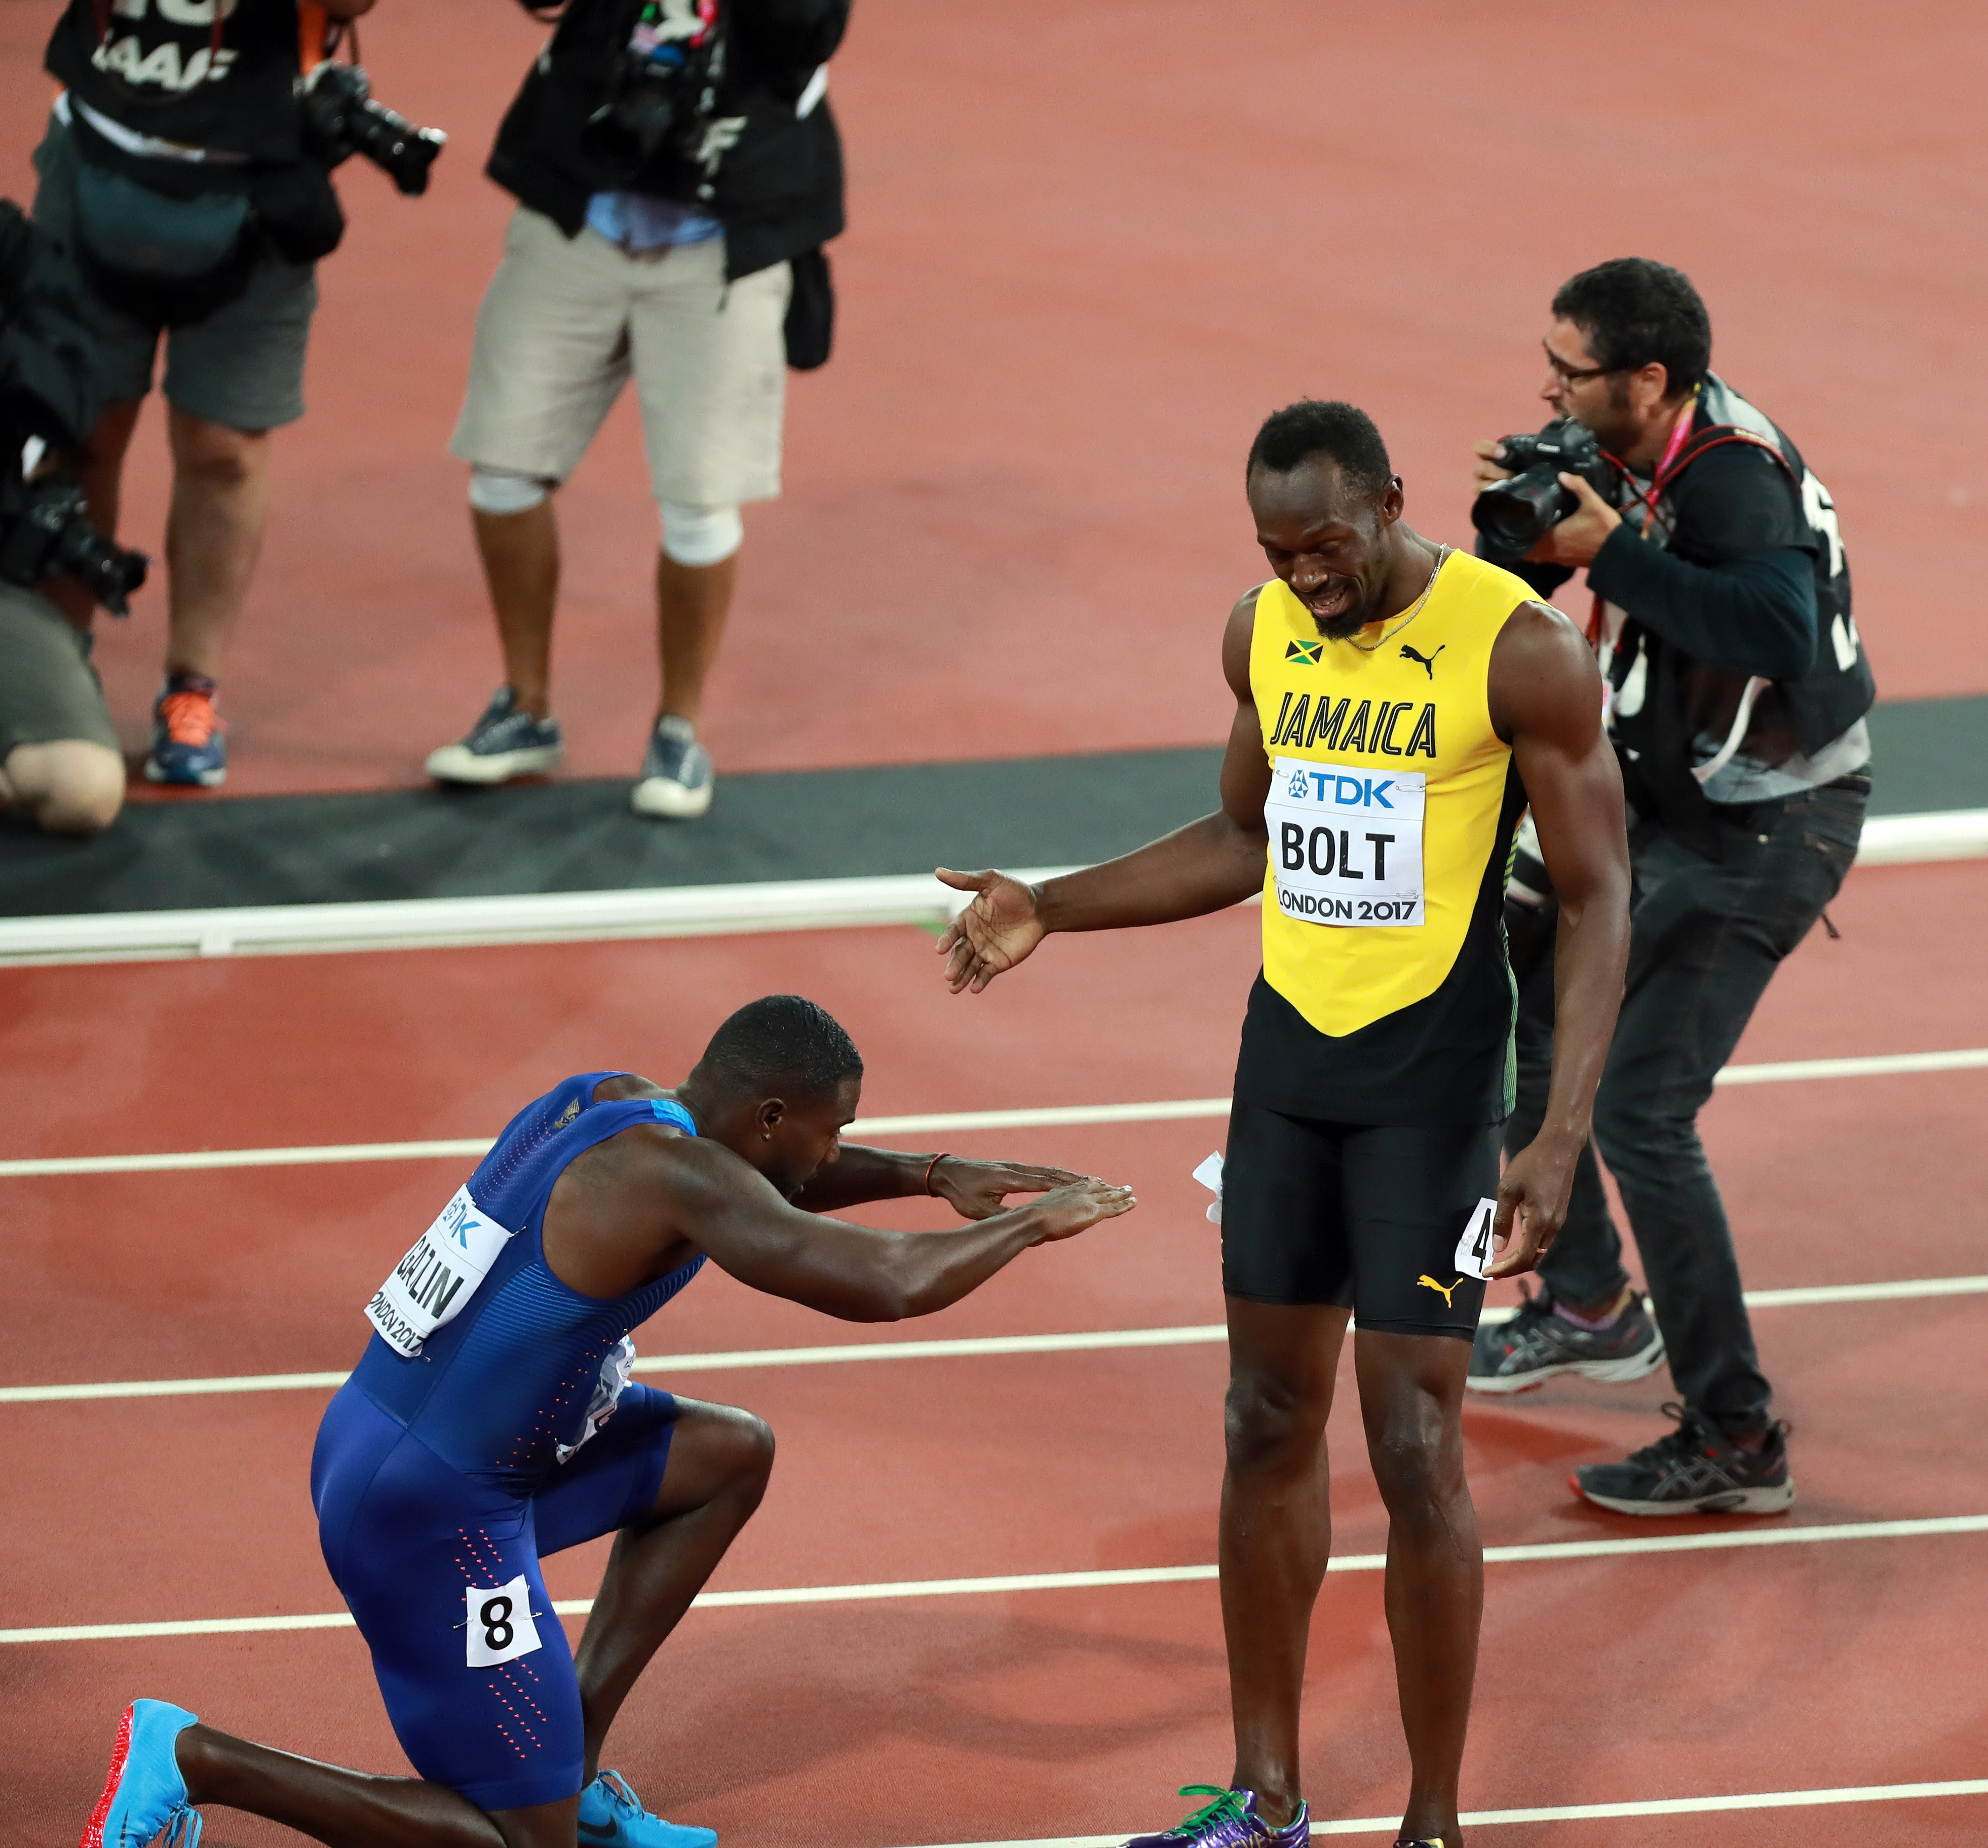 Veteran American sprinter Justin Gatlin, 35, bows down to Bolt after the race as if saluting a king. — All photos by Xinhua